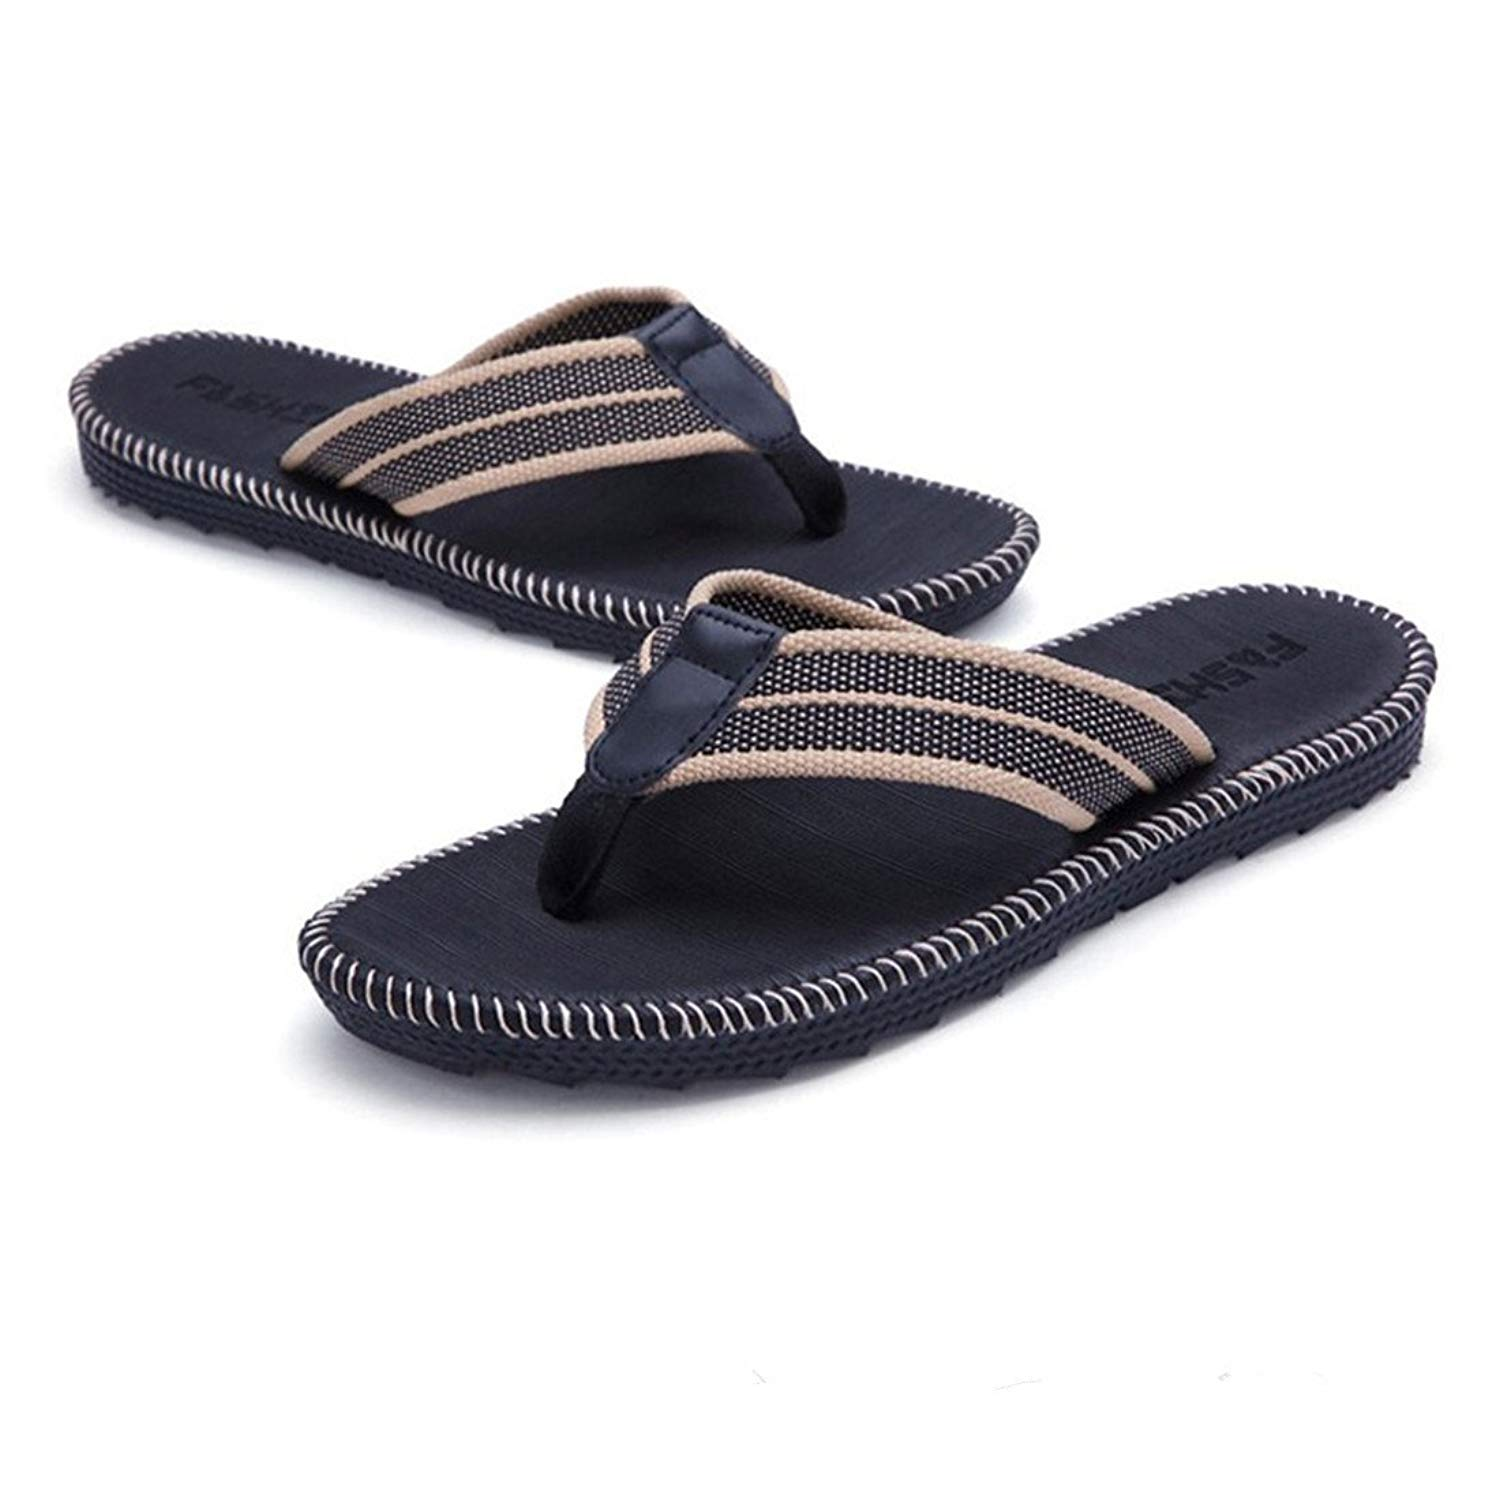 f203e828beddde Get Quotations · New Men s Flip Flops Beach Sandals Lightweight EVA Sole  Comfort Thongs